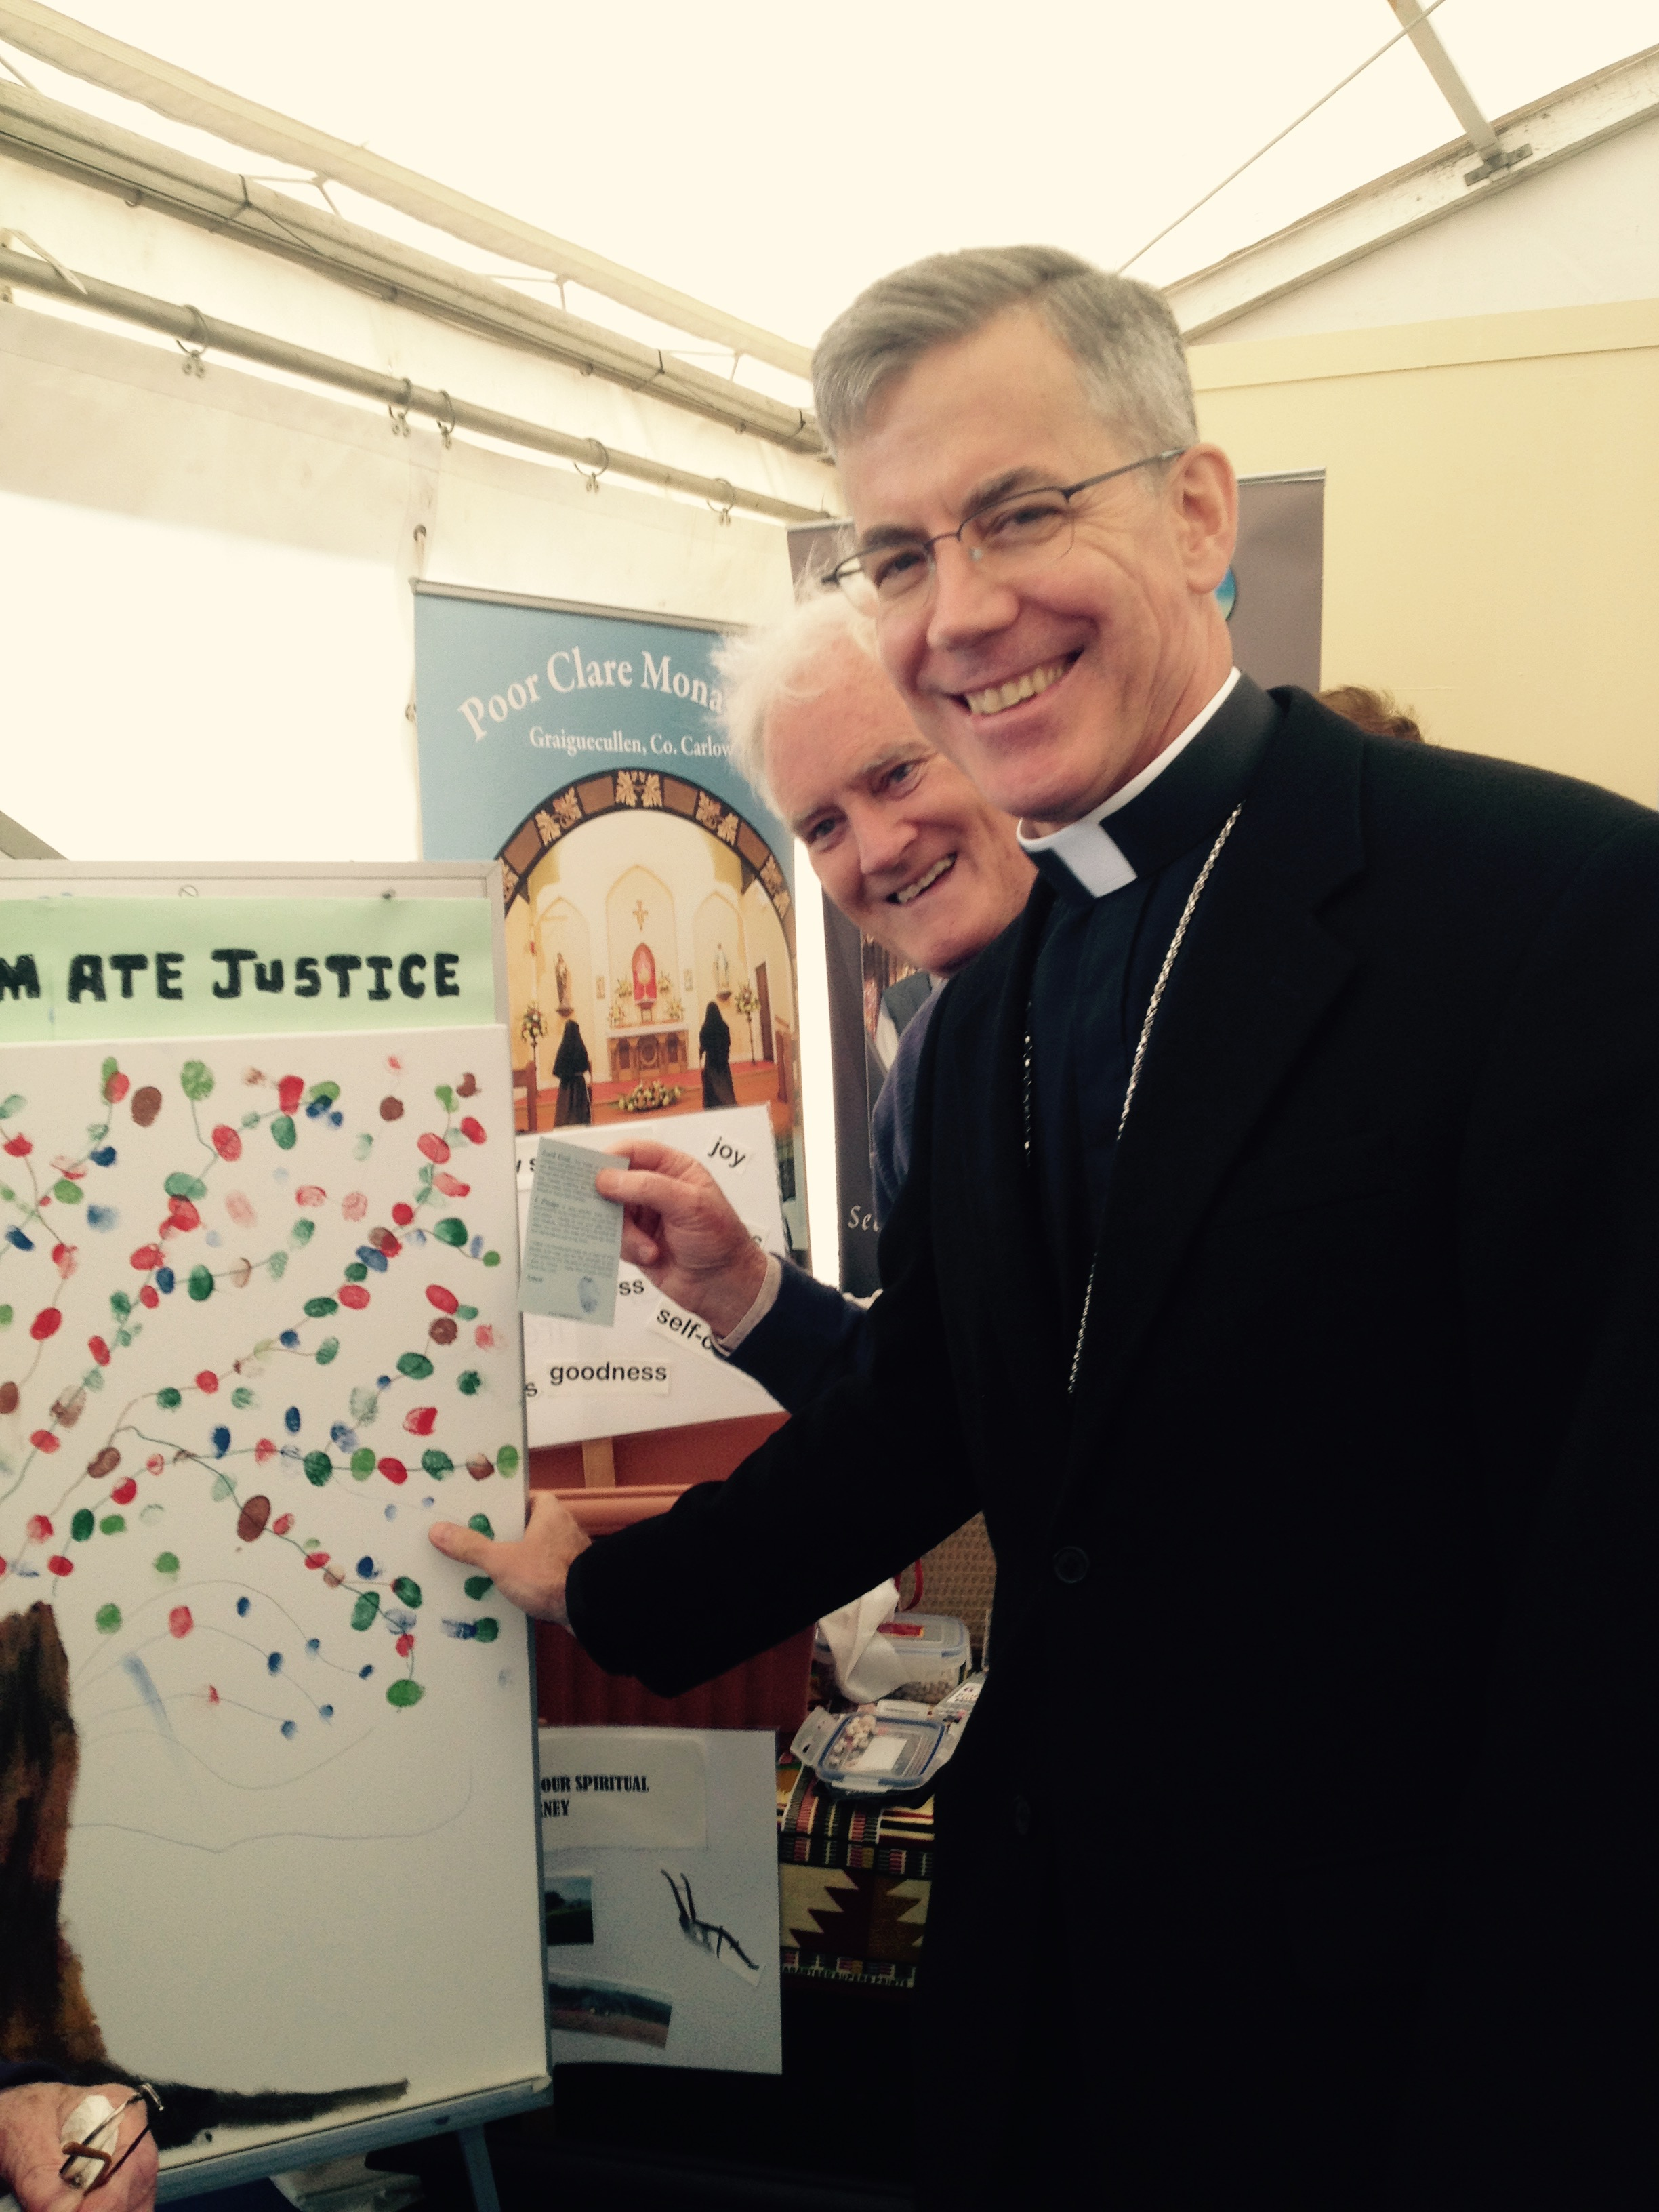 His Excellency Archbishop Charles Brown adds his mark to the SMA thumbprint campaign